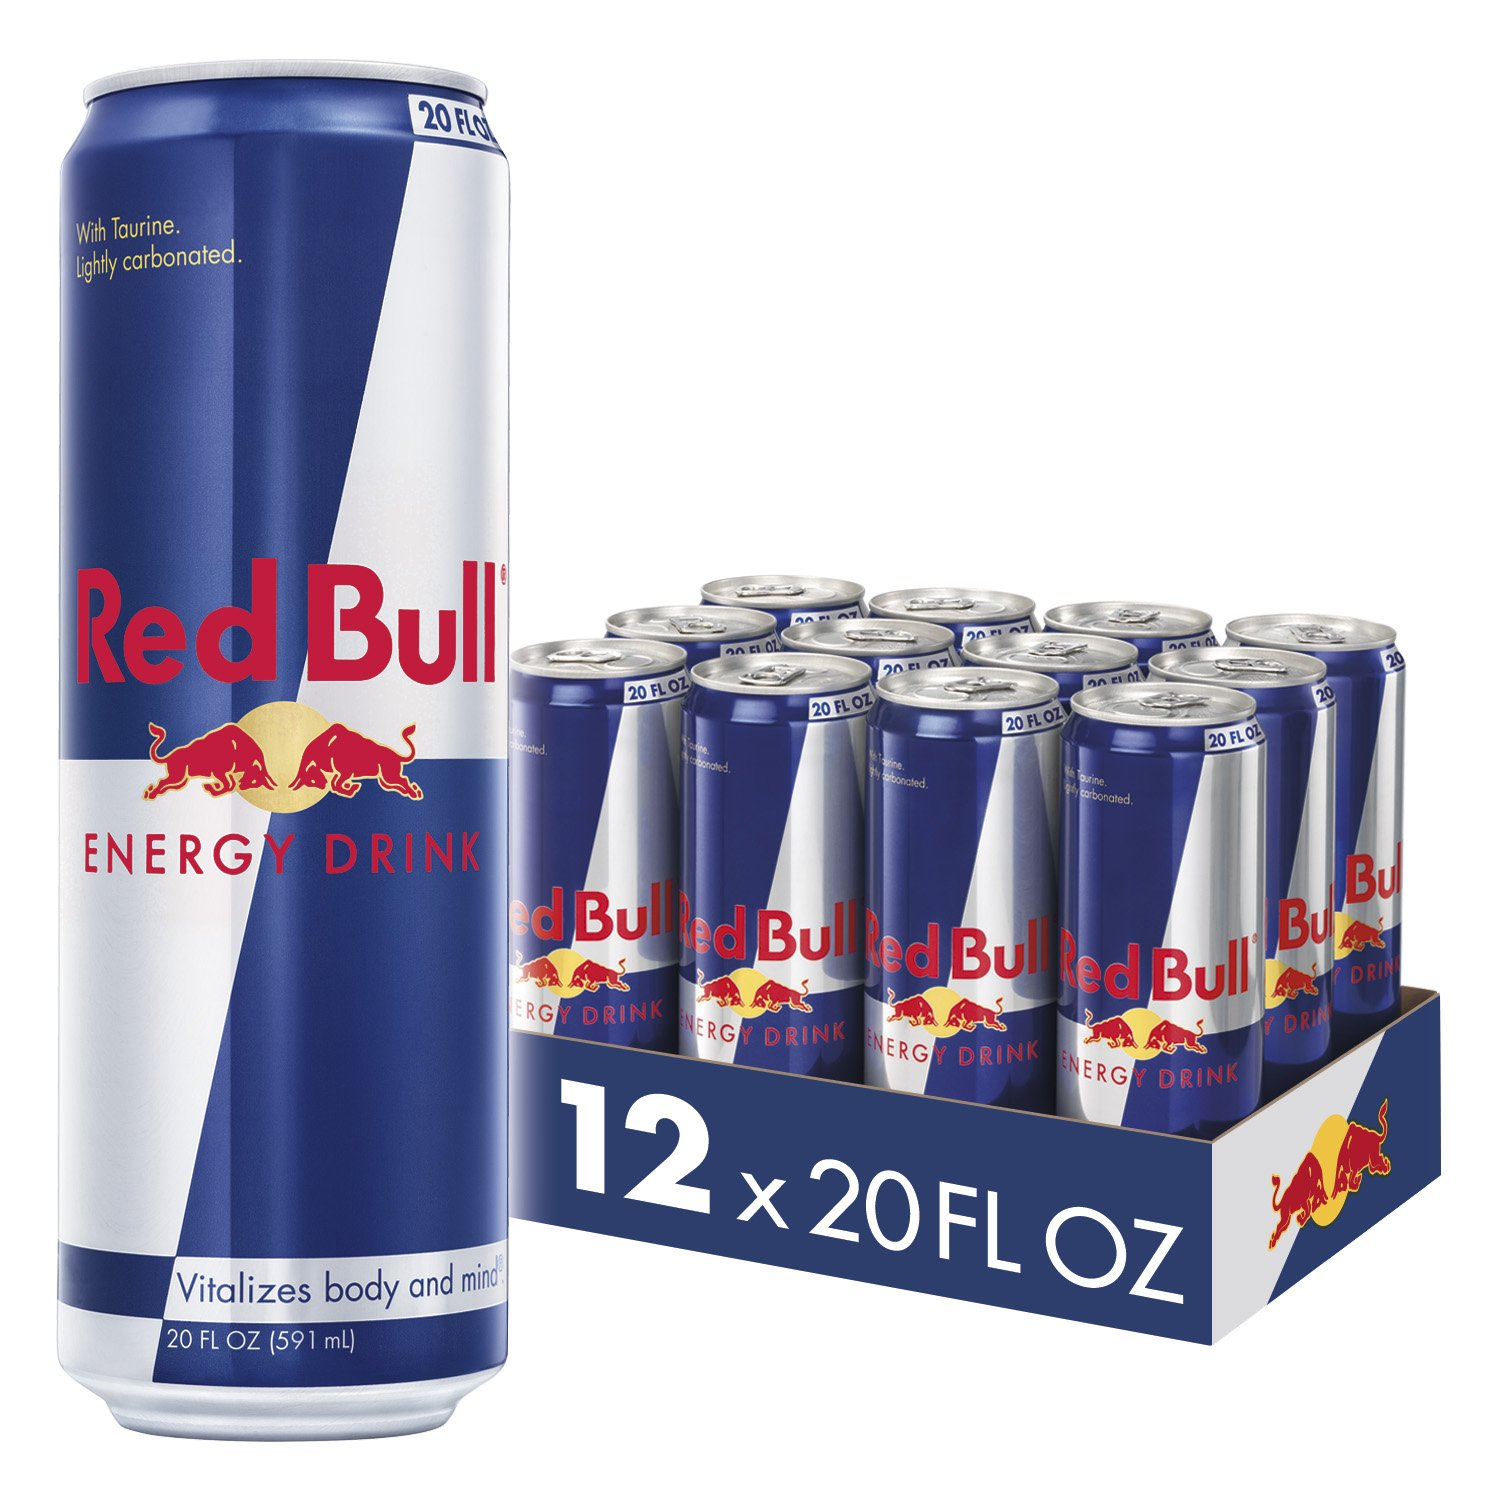 Red Bull Energy Drink 12 Pack of 20 Fl Oz